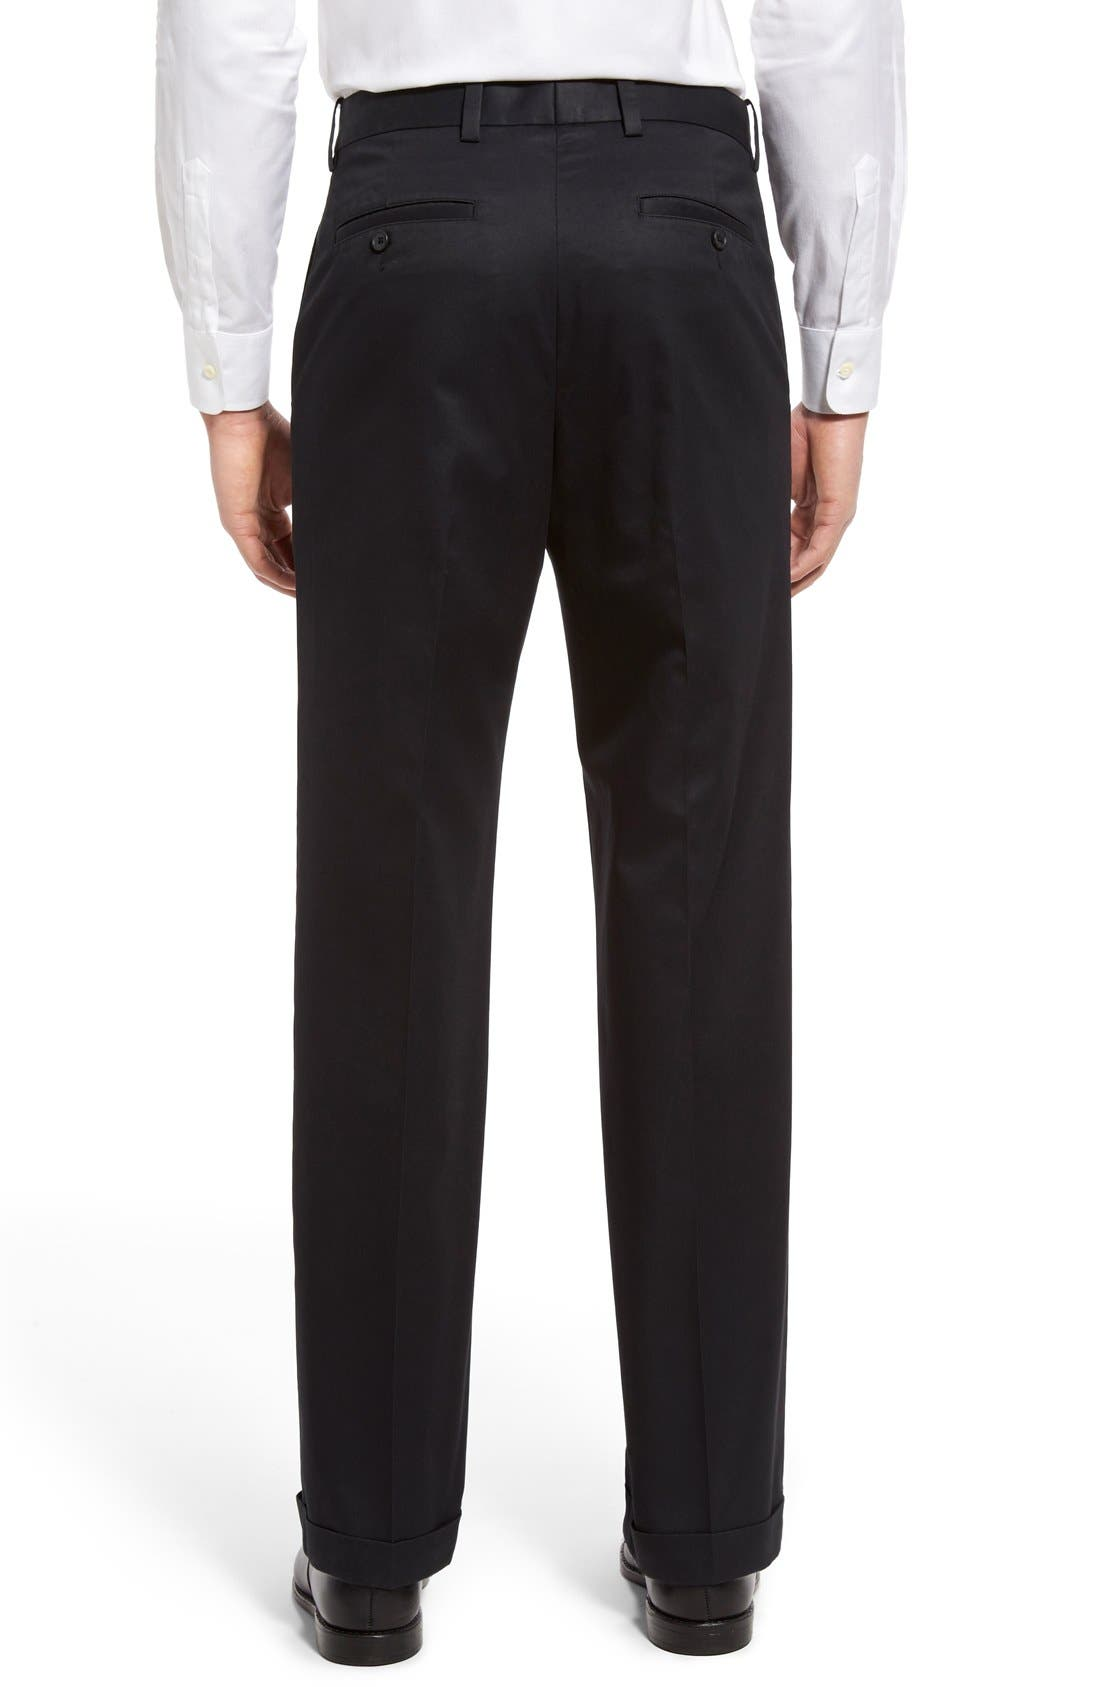 NORDSTROM MEN'S SHOP, Classic Smartcare<sup>™</sup> Supima<sup>®</sup> Cotton Pleated Trousers, Alternate thumbnail 2, color, BLACK CAVIAR